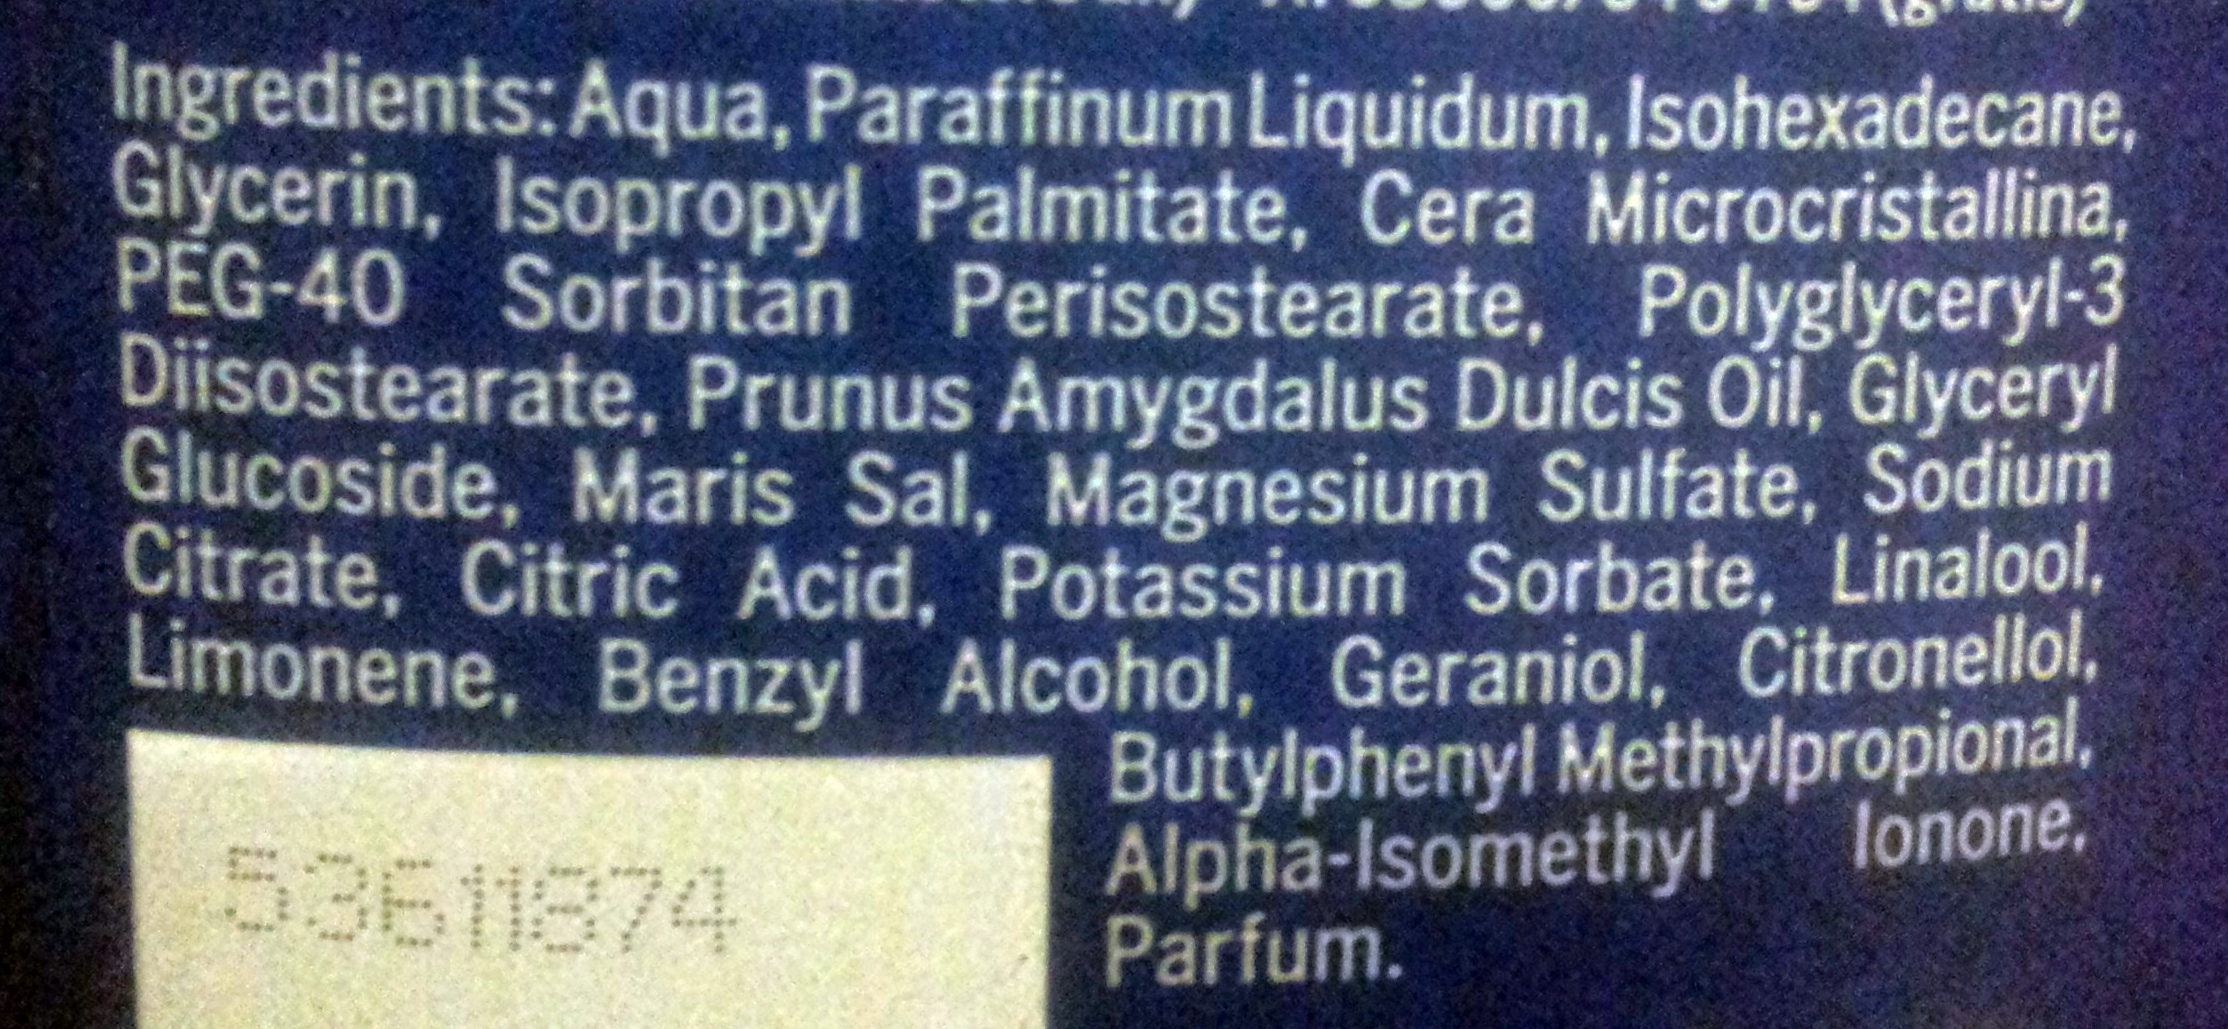 Nivea Body Milk - Ingredients